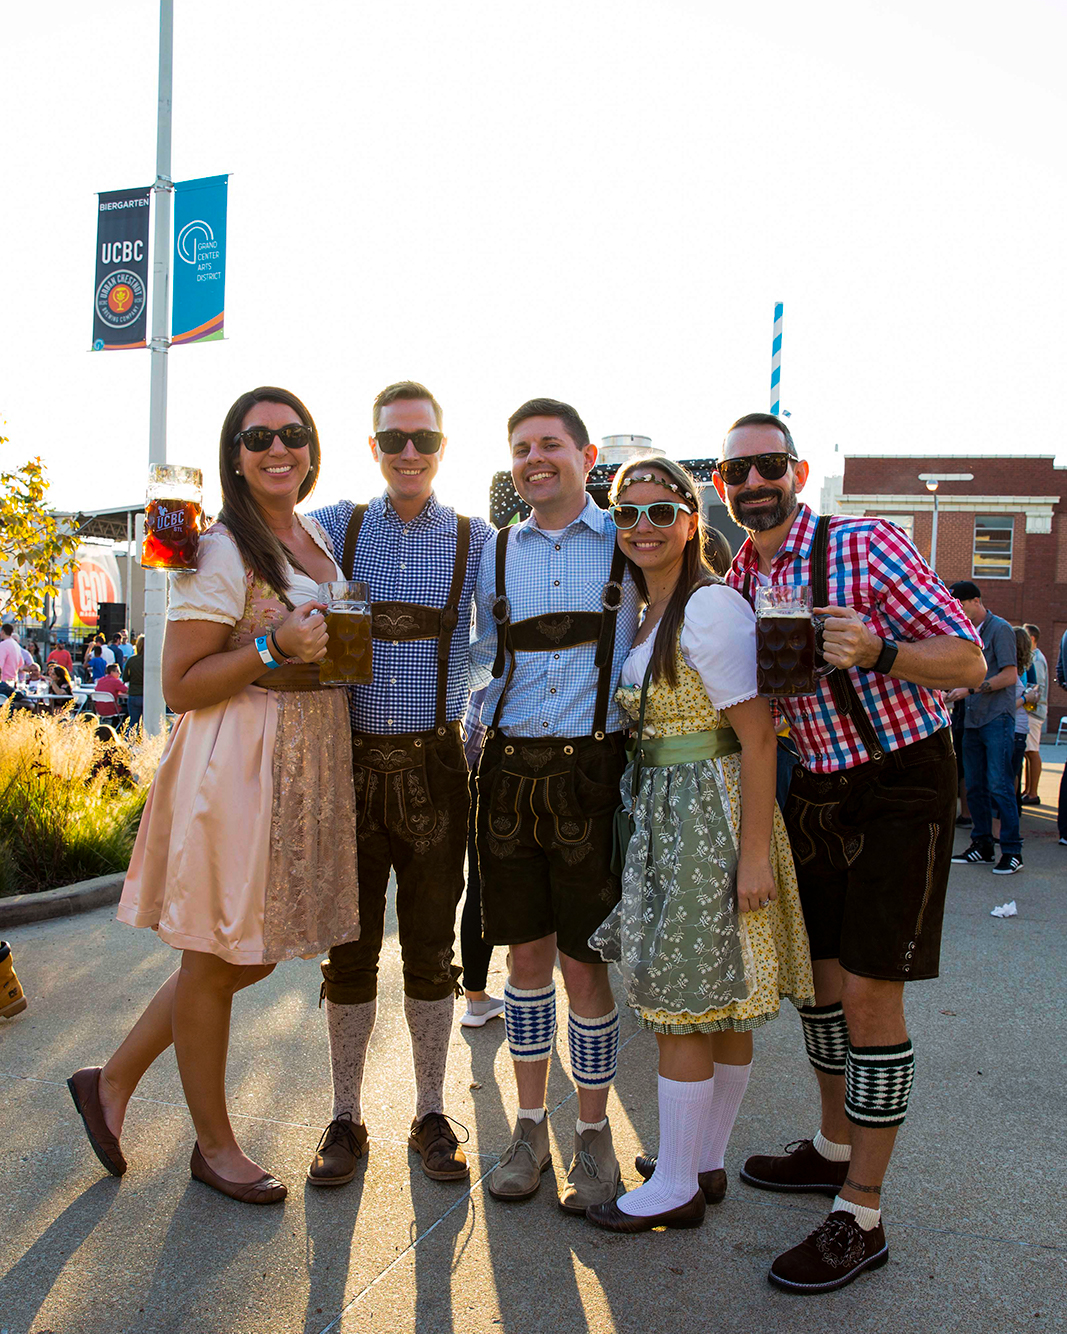 Urban Chestnut's Oktoberfest St. Louis returns Sept. 27-29, 2019